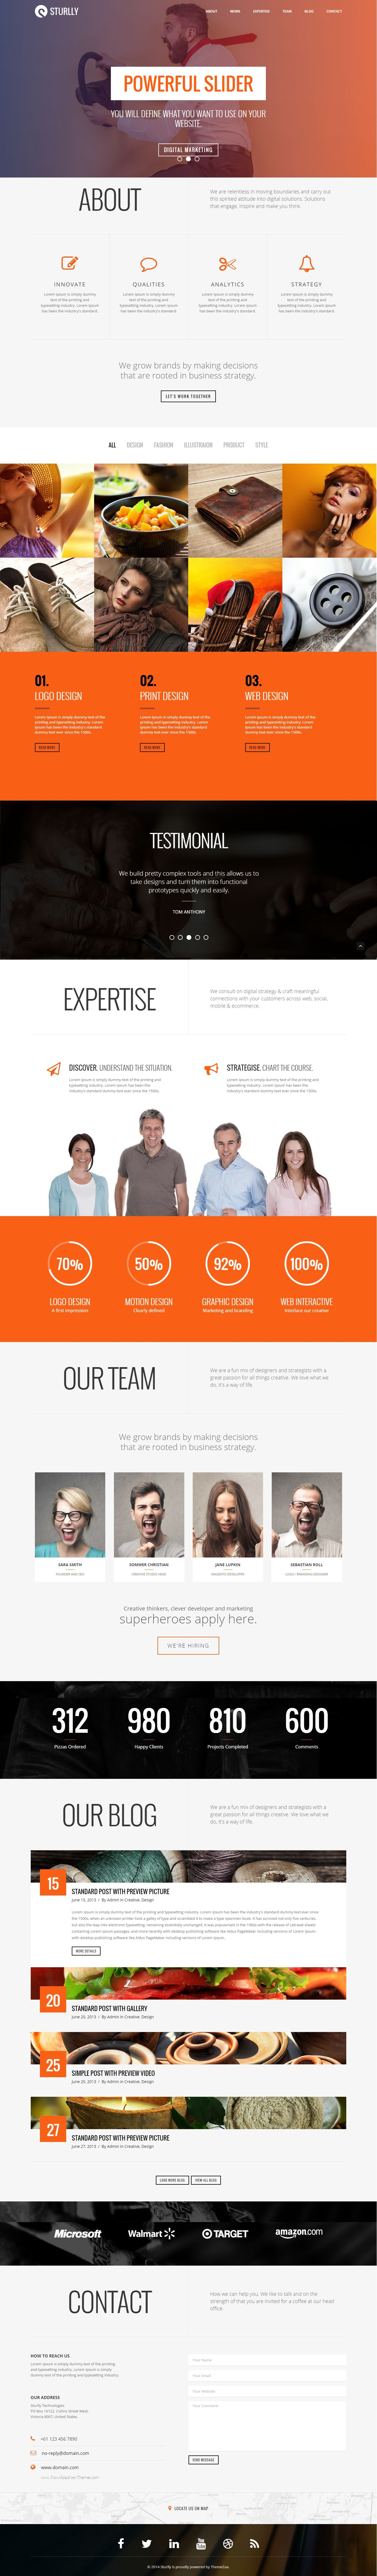 Multipurpose one page bootstrap theme for design agency website multipurpose one page bootstrap theme for design agency website template accmission Image collections